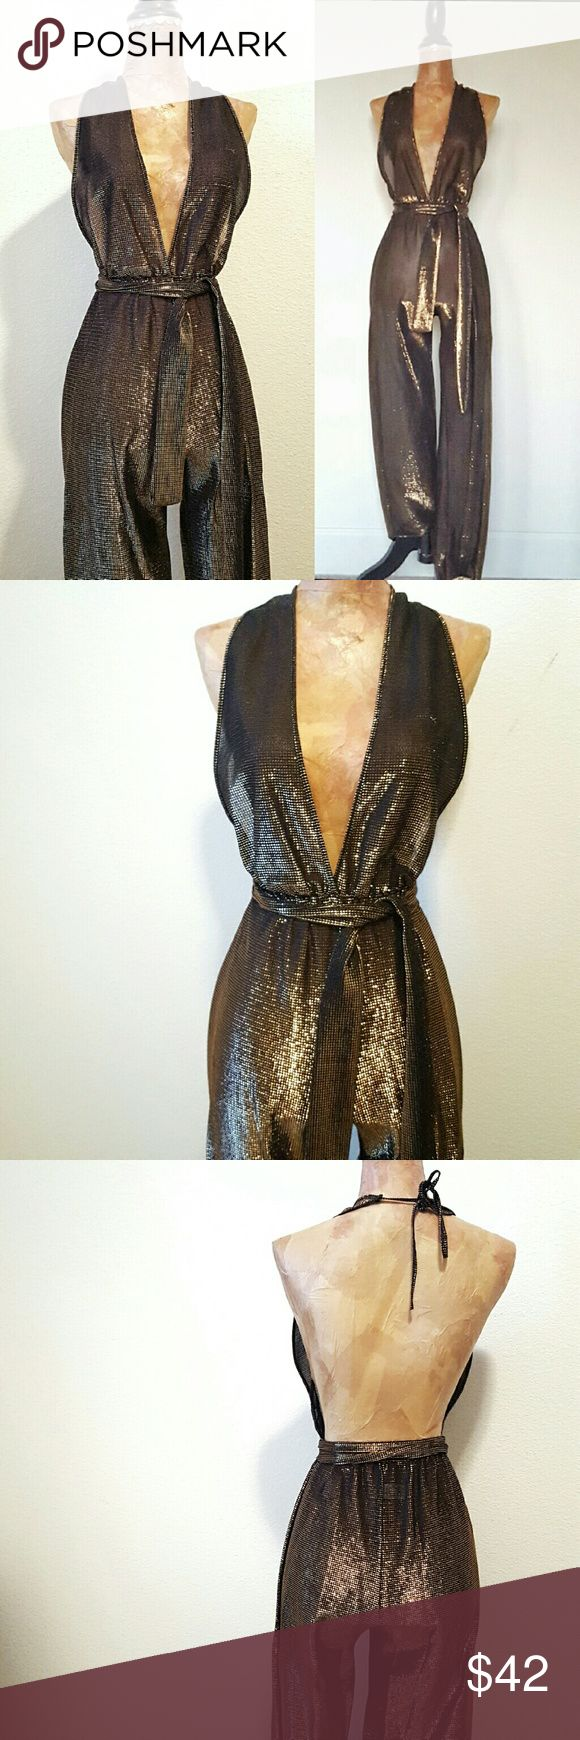 "Vintage 70s Disco Metallic Backless Jumpsuit A-mazing piece of vintage gold. Black with bronze metallic thread, semi- sheer fabric. Backless and halter top, ties at neck. Elastic at waist and ankles. Attached matching sash belt. Slightly cropped length on legs, approx. 30"". Waist is approx 10"" unstretched and 17"" stretched. Fantastic vintage condition. Fits xs/small depending on desired fit. Vintage  Pants Jumpsuits & Rompers"